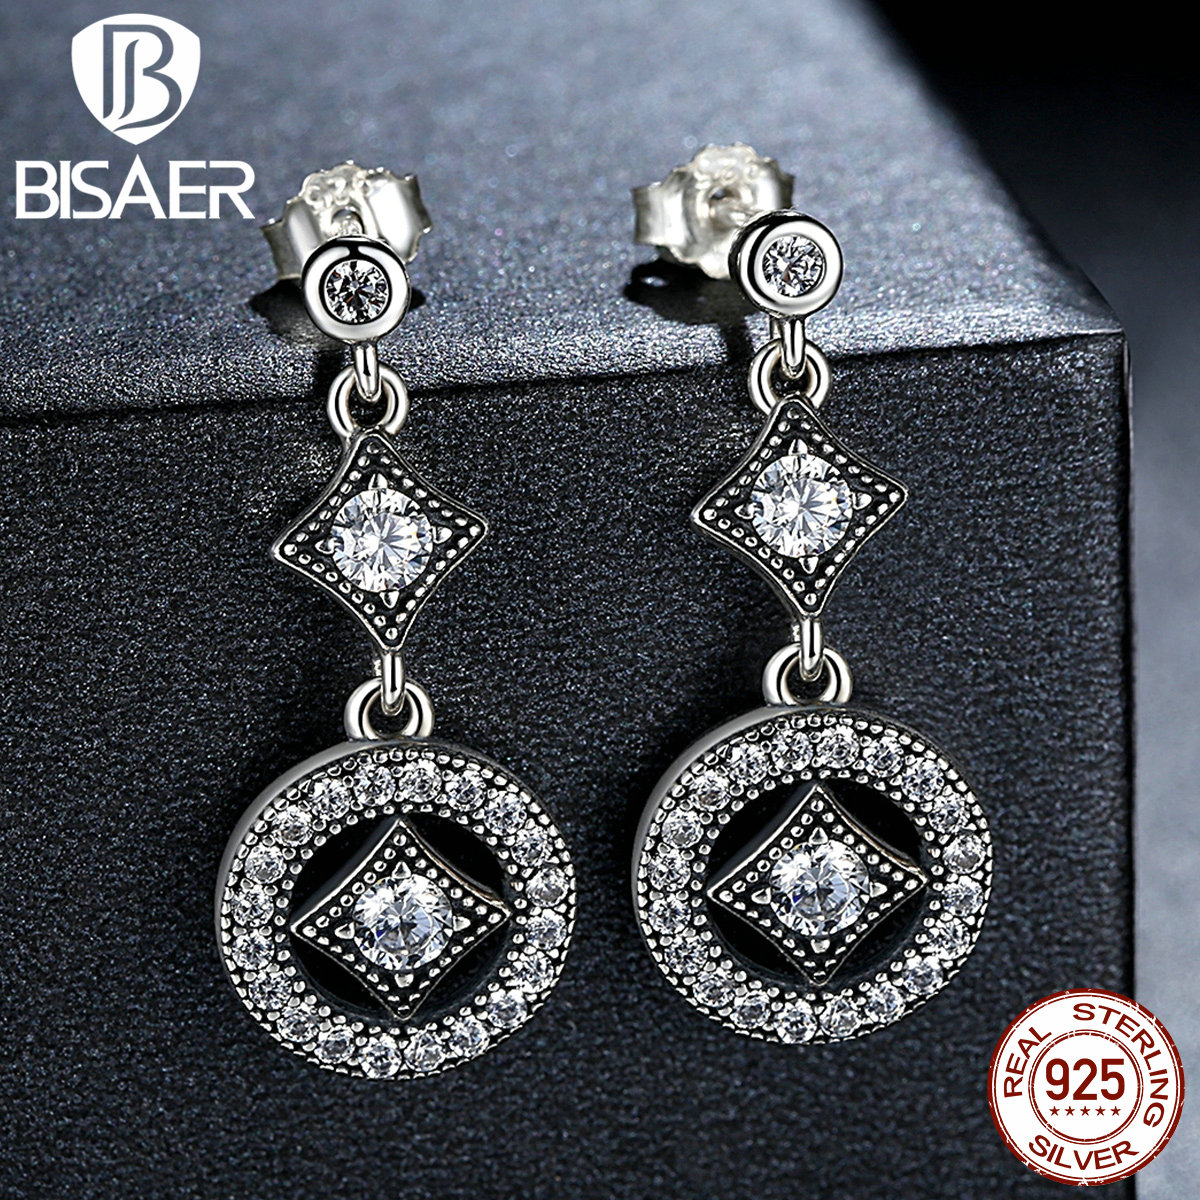 Real 925 Sterling Silver Drop Earrings AAA Zircon Round Long Earrings for Women European Fashion Authentic Silver Jewelry GOS492